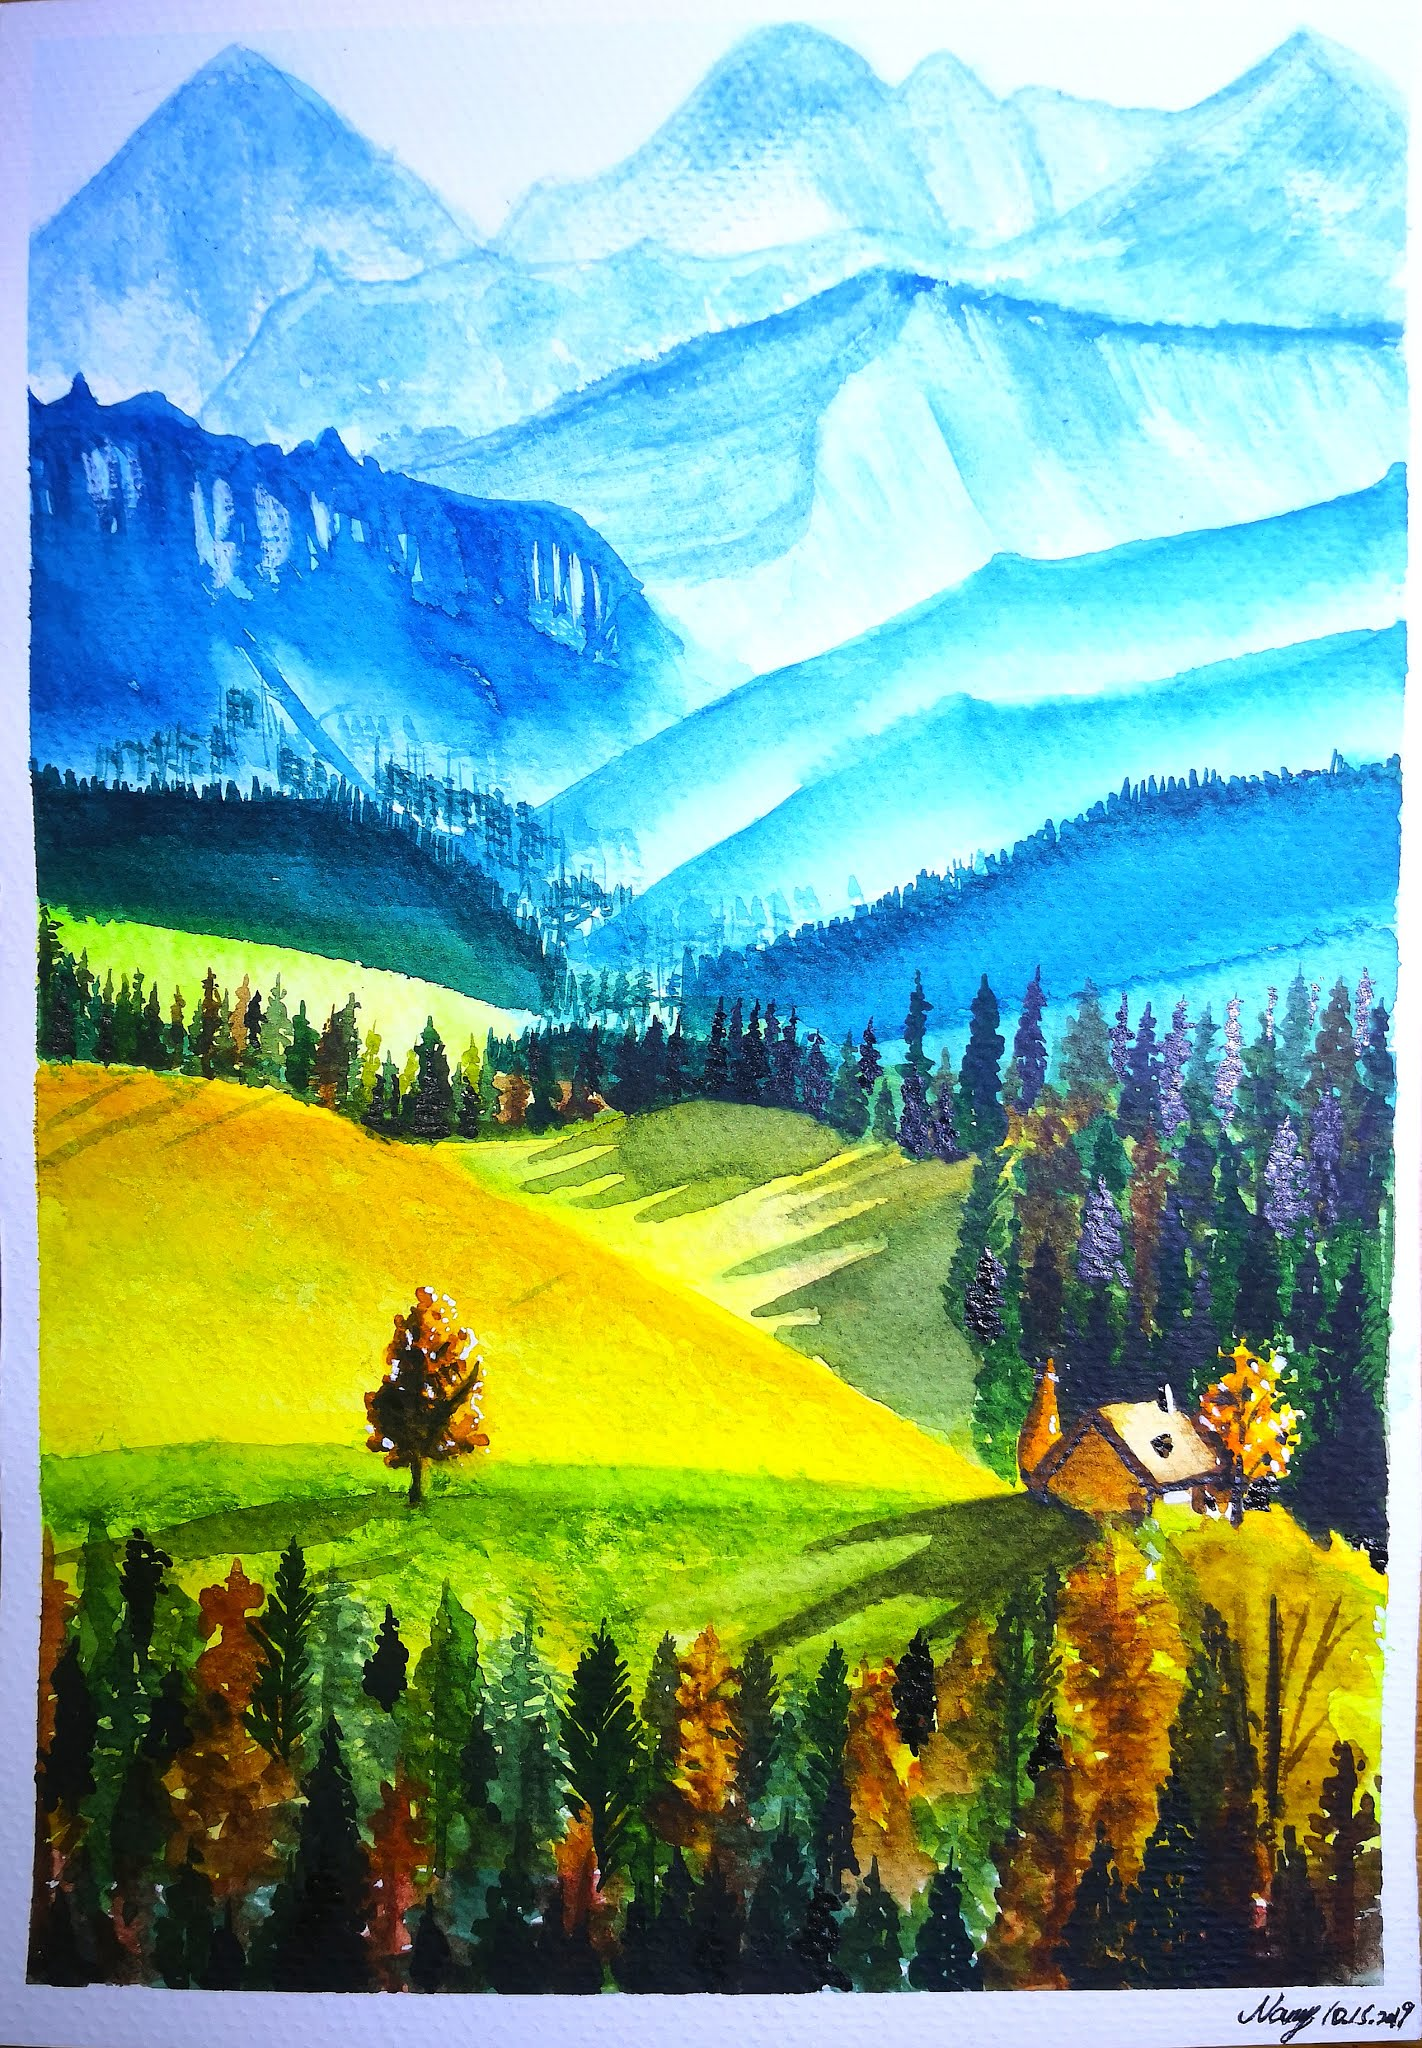 How To Paint Mountains With Acrylics : paint, mountains, acrylics, Europe, Landscapes, Autumn, Mountains, Watercolor, HiArt